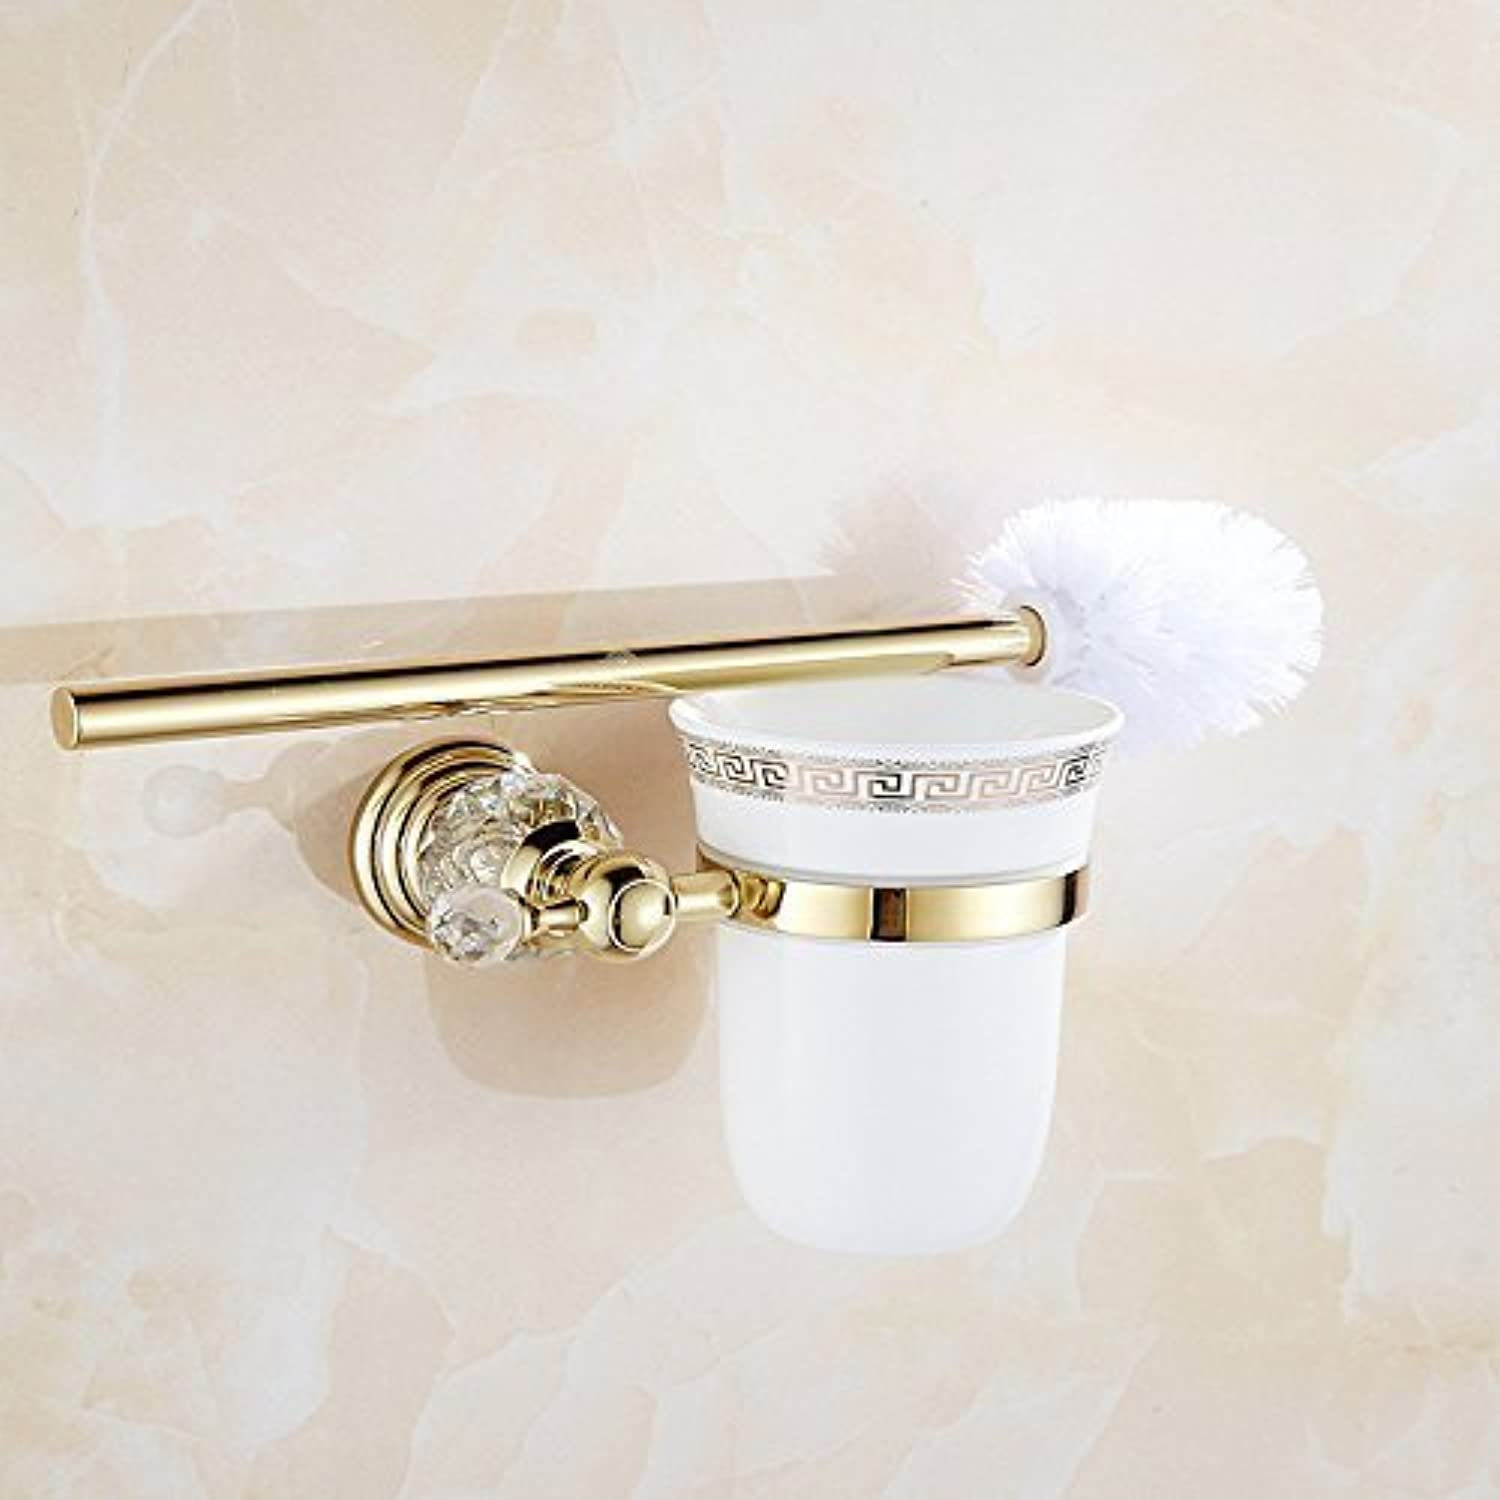 Crystal of European gold Toilet Toilet Antiquities of The Brush Holder Toilet Brush Bathroom Rack Wall Mount Free Perforation